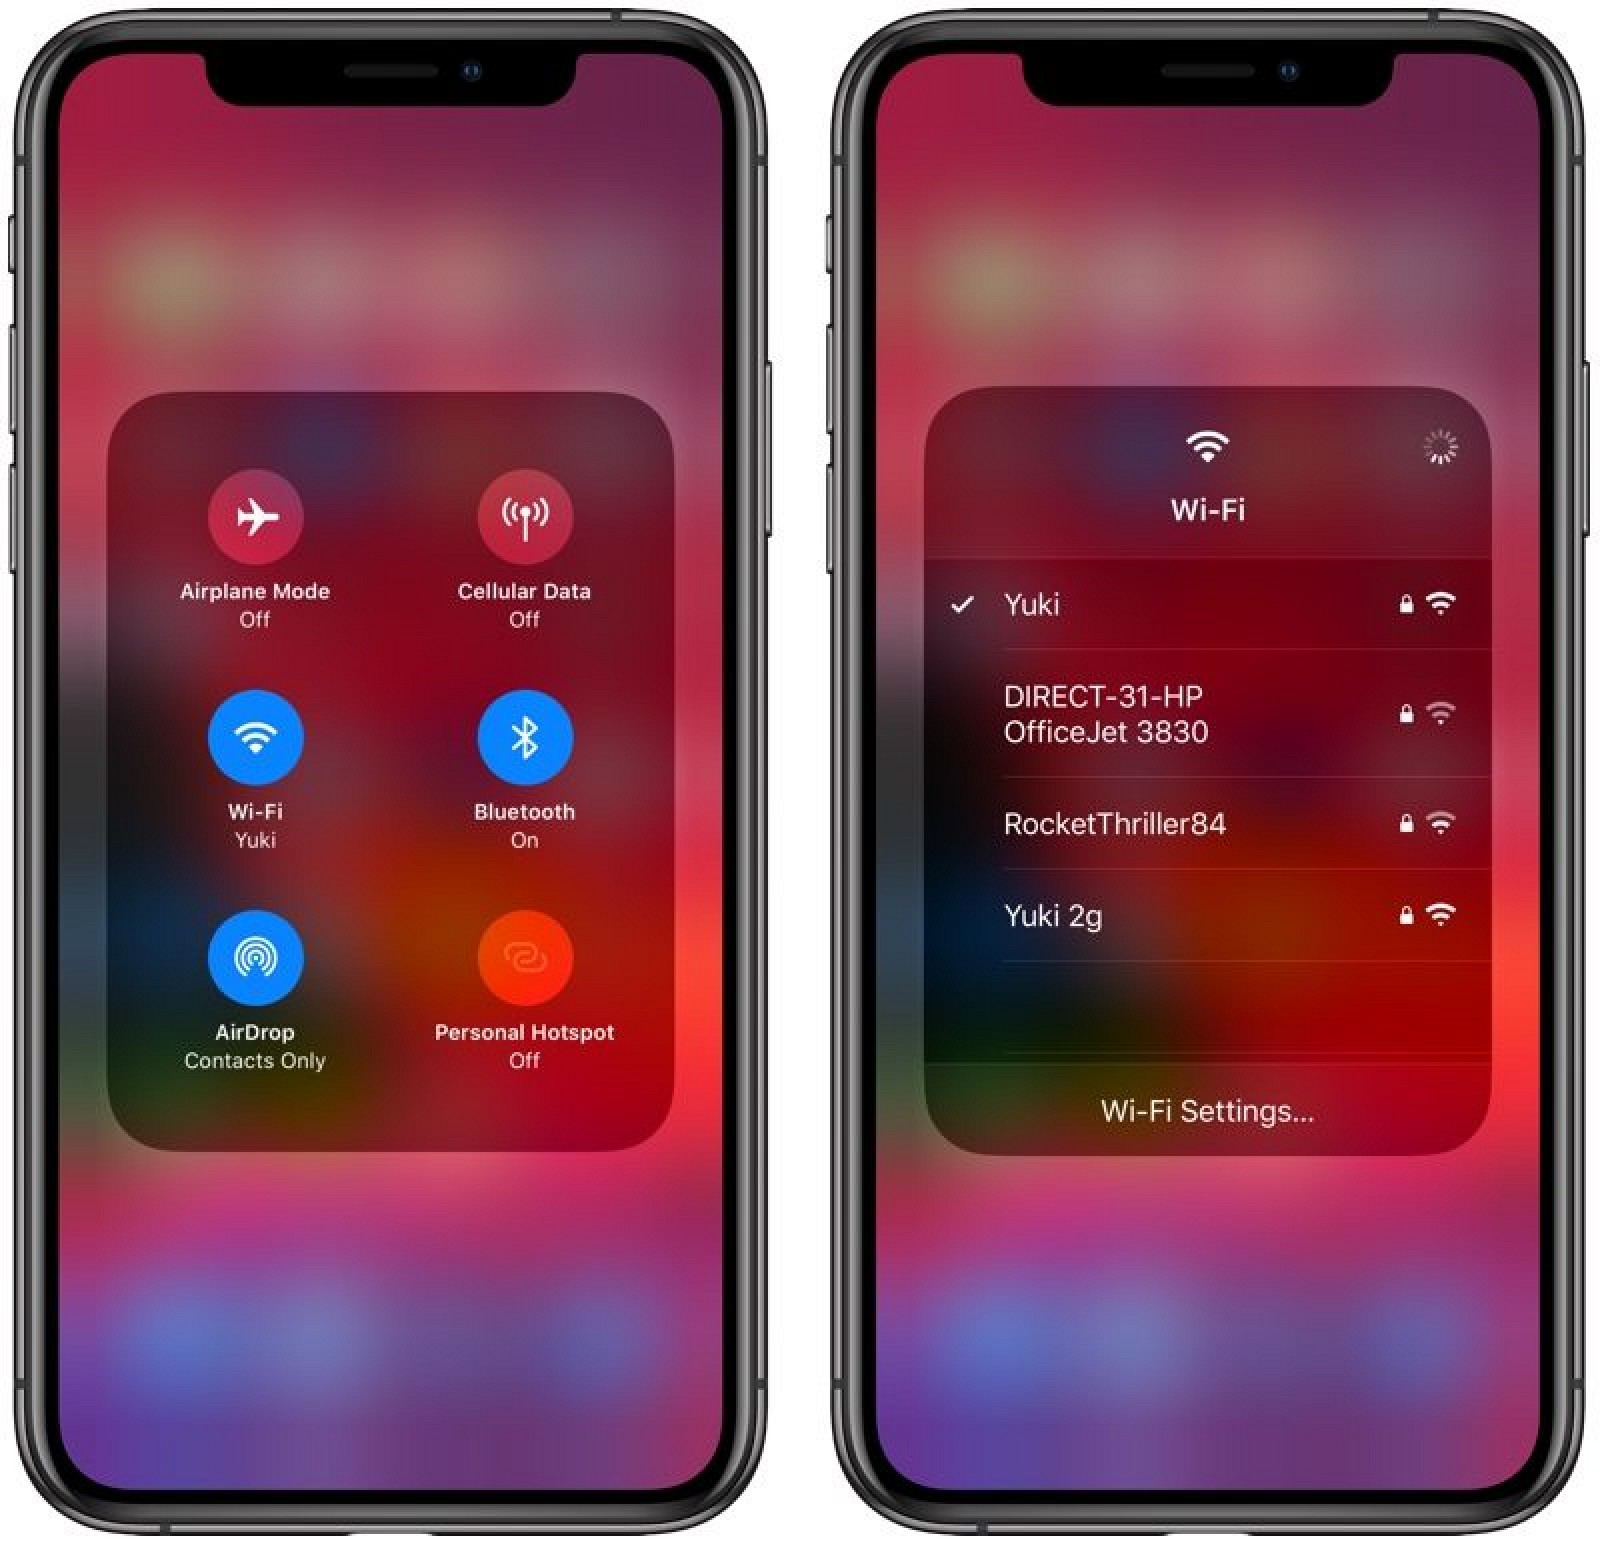 Control Center Wifi iOS 13